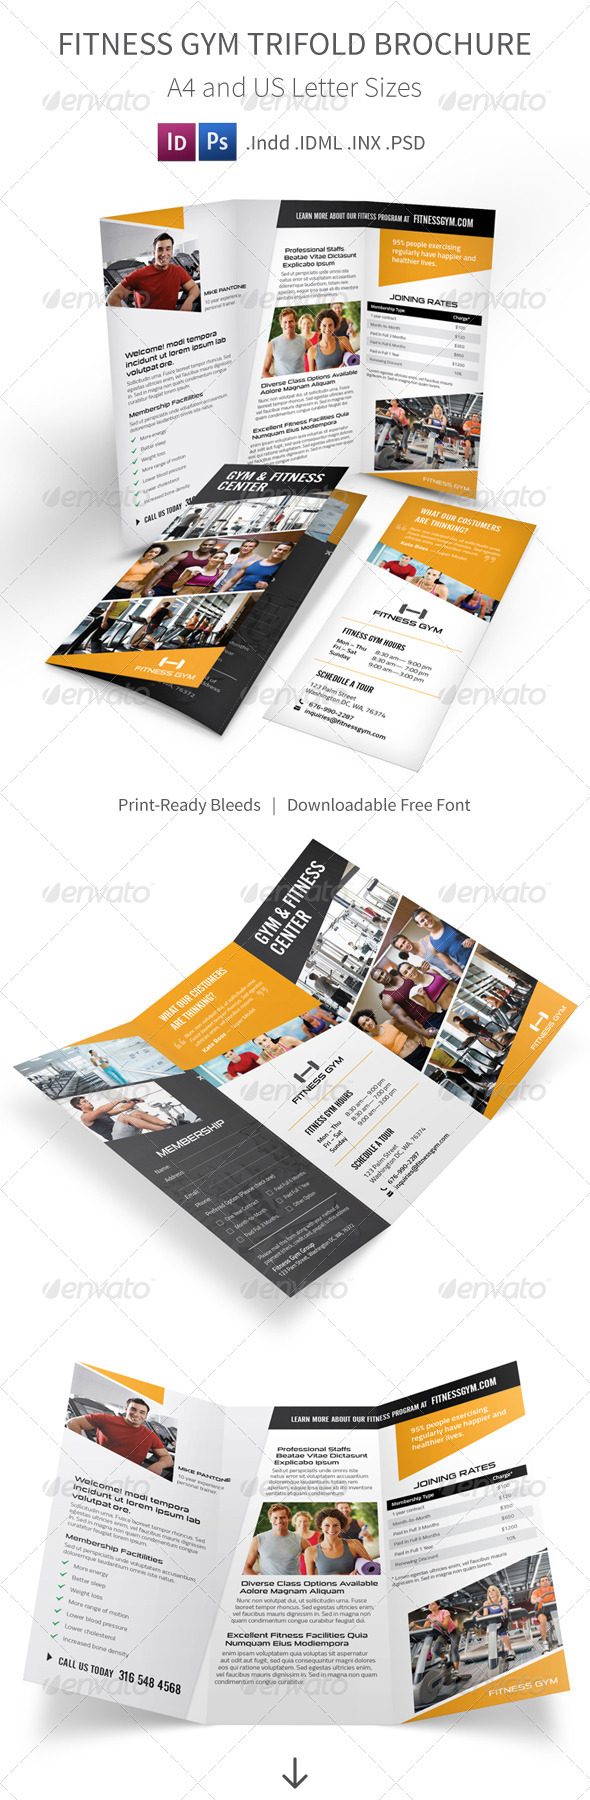 GraphicRiver Fitness Gym Trifold Brochure 8255793